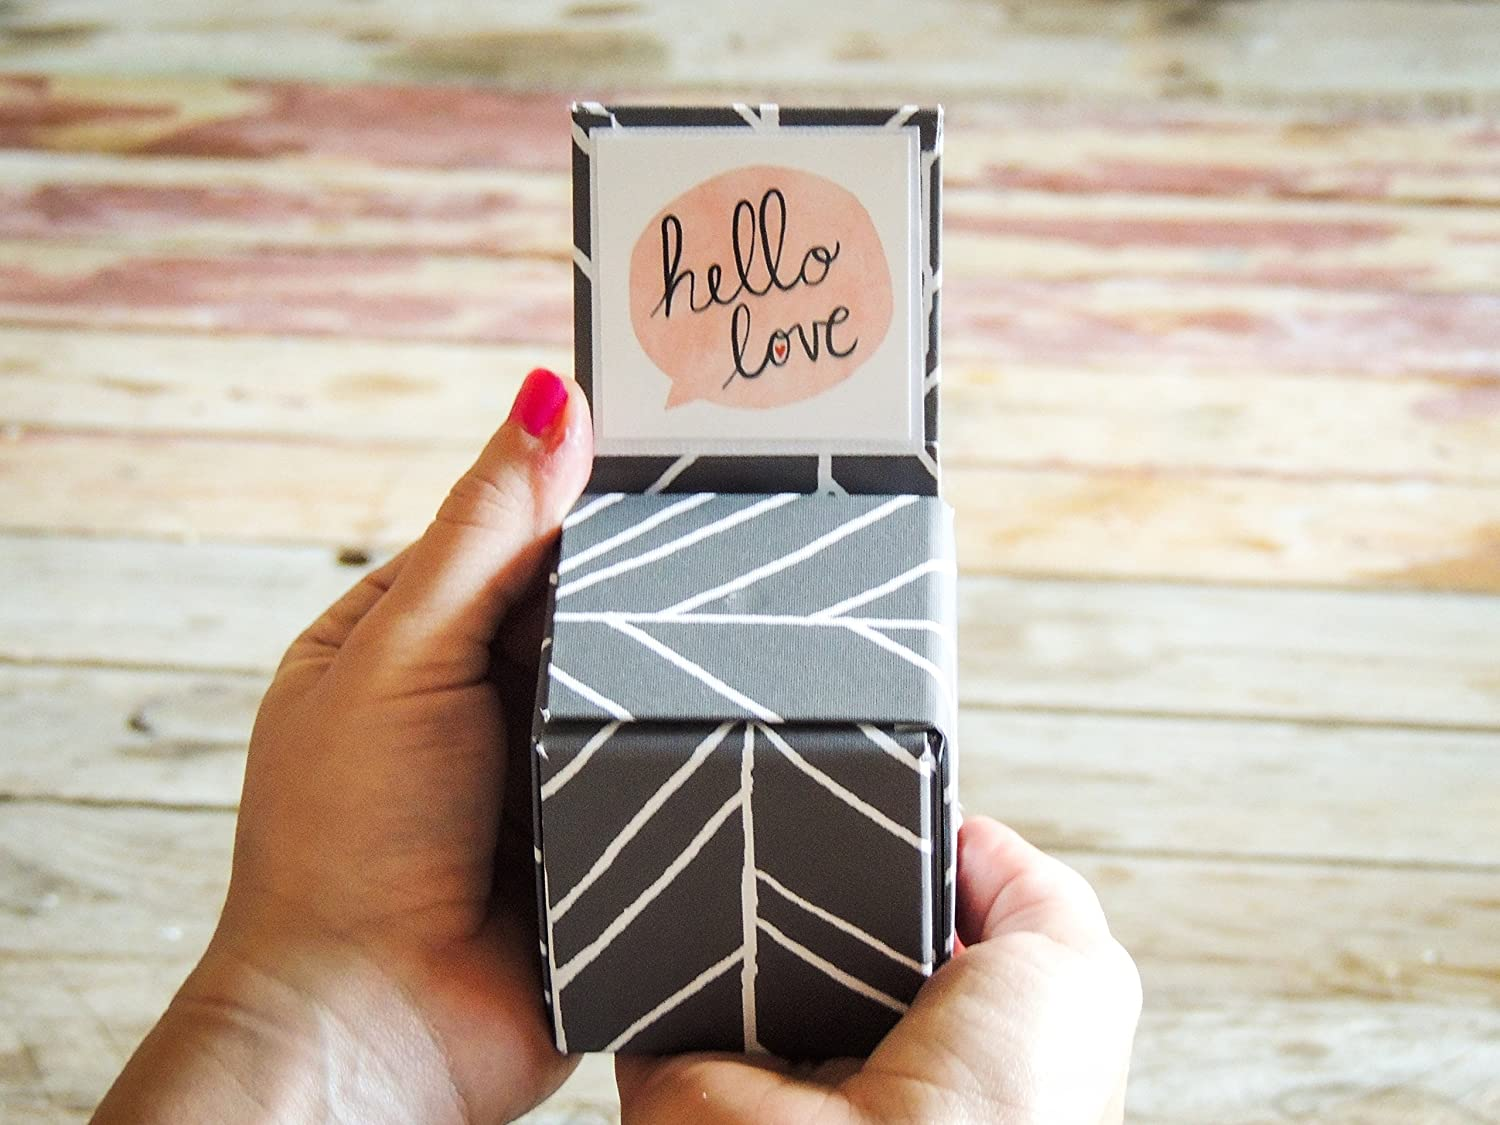 Surprise box to turn all your gifts into amazing moments